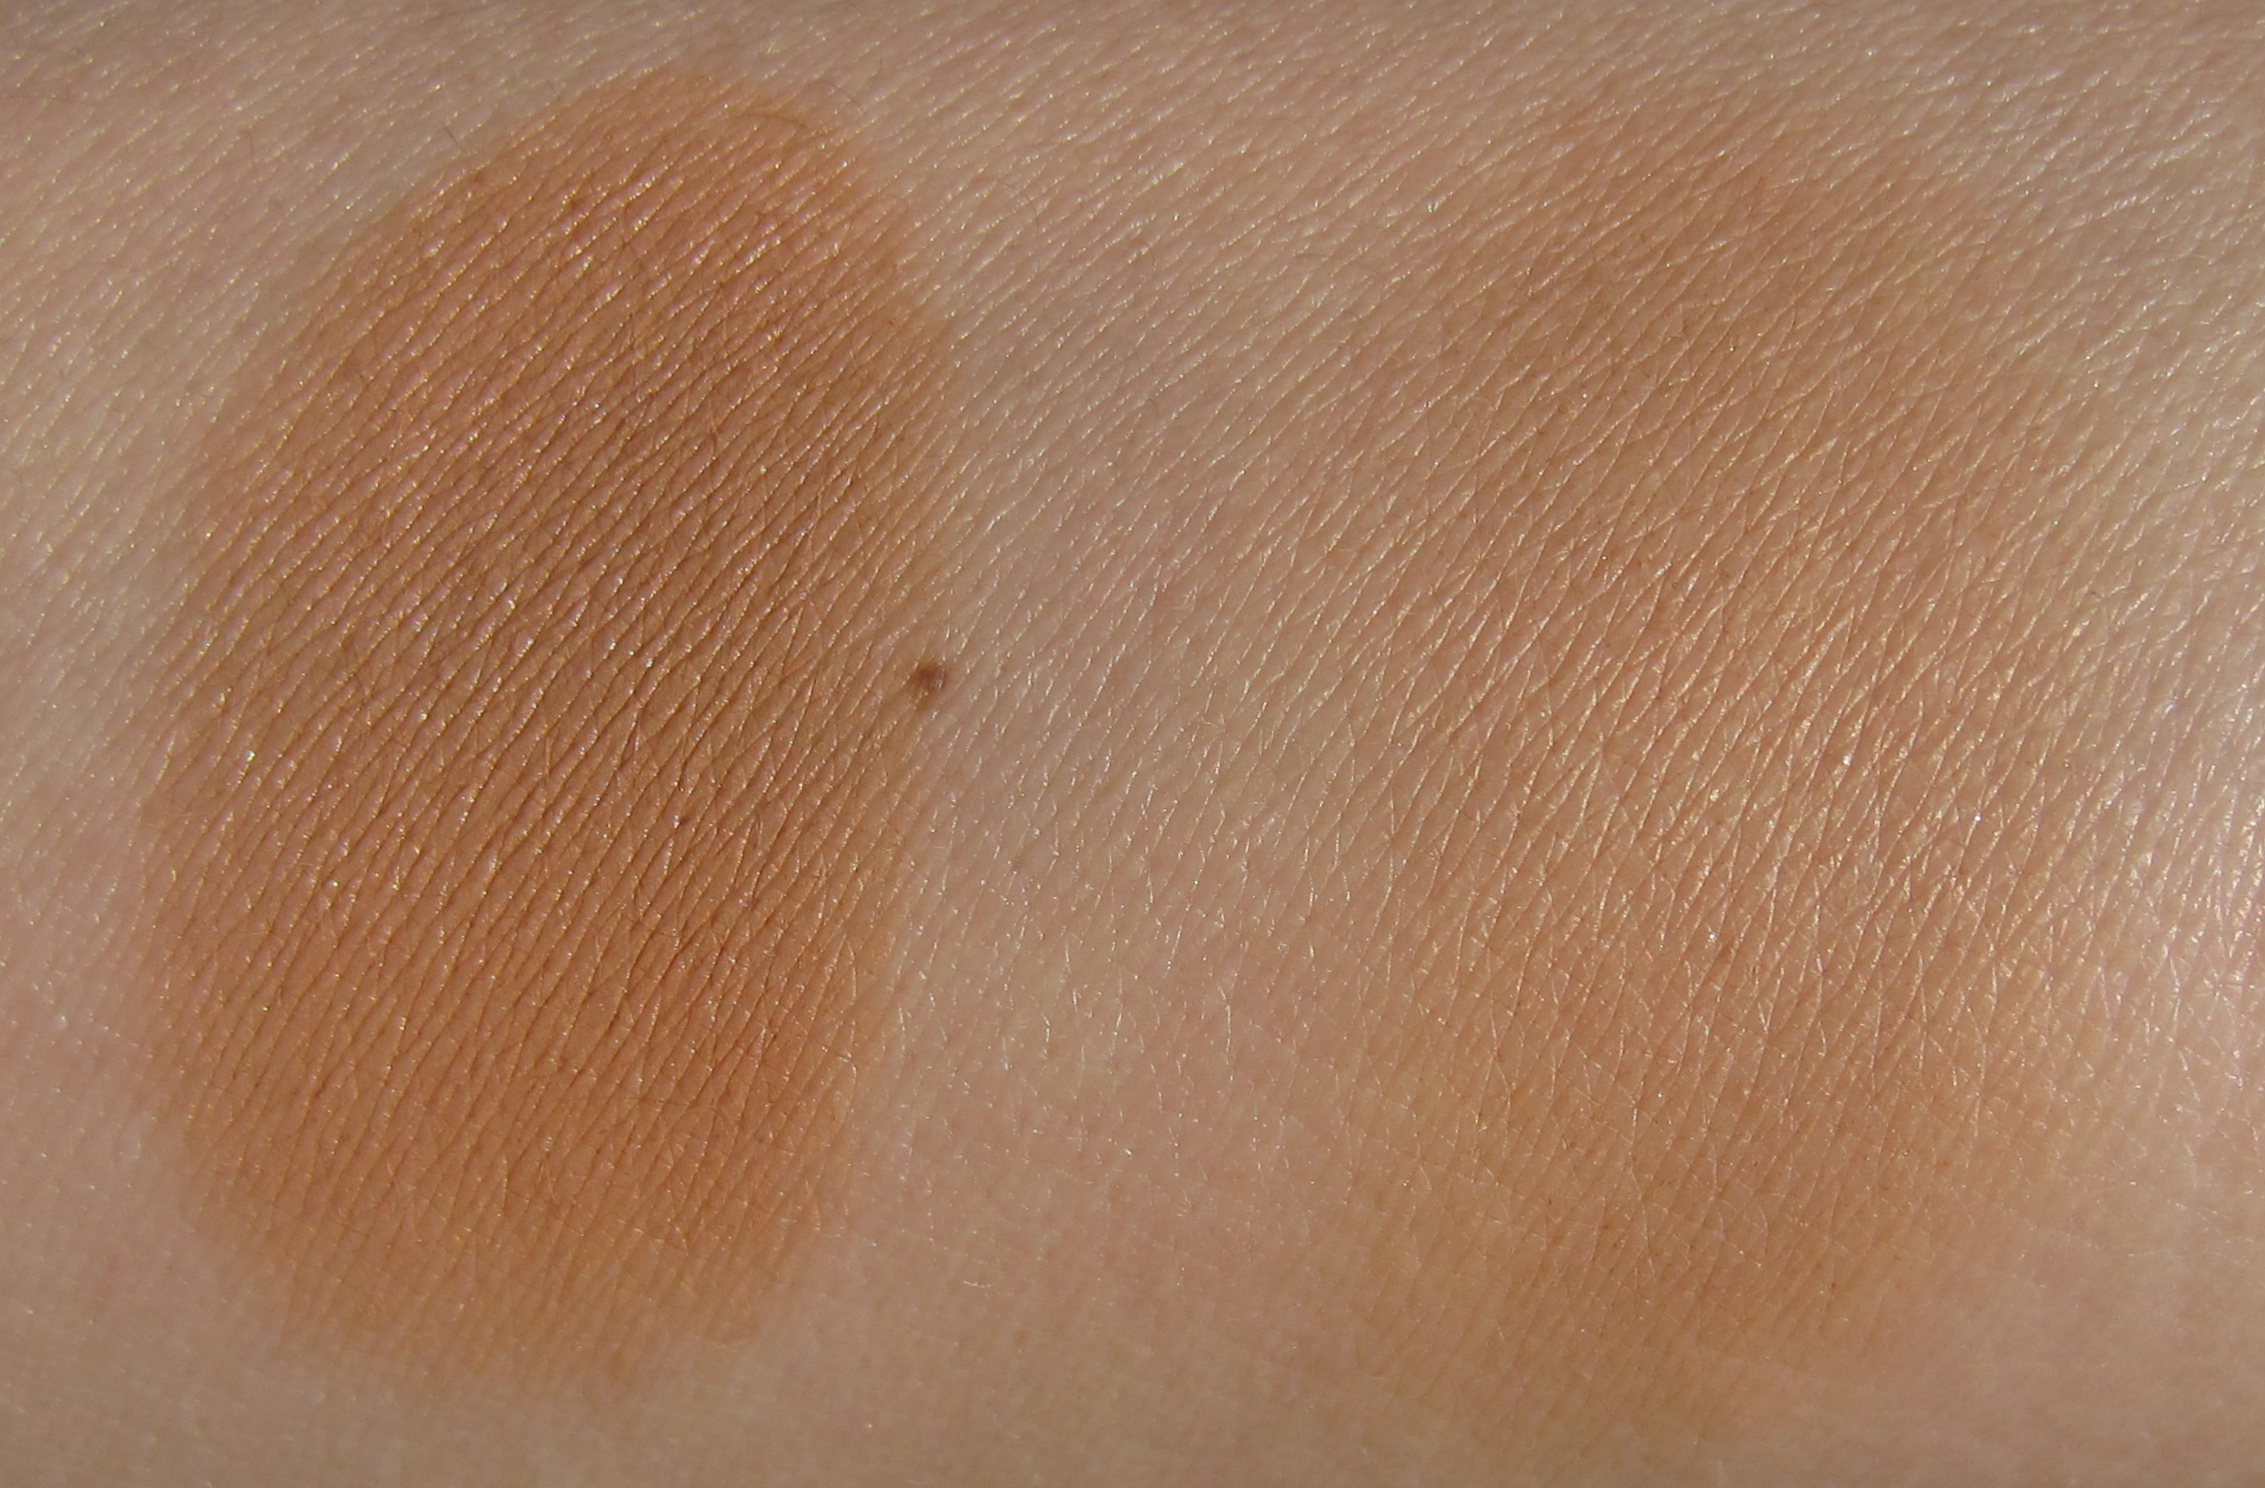 Soleil Tan De Chanel Bronzing Makeup Base by Chanel #19